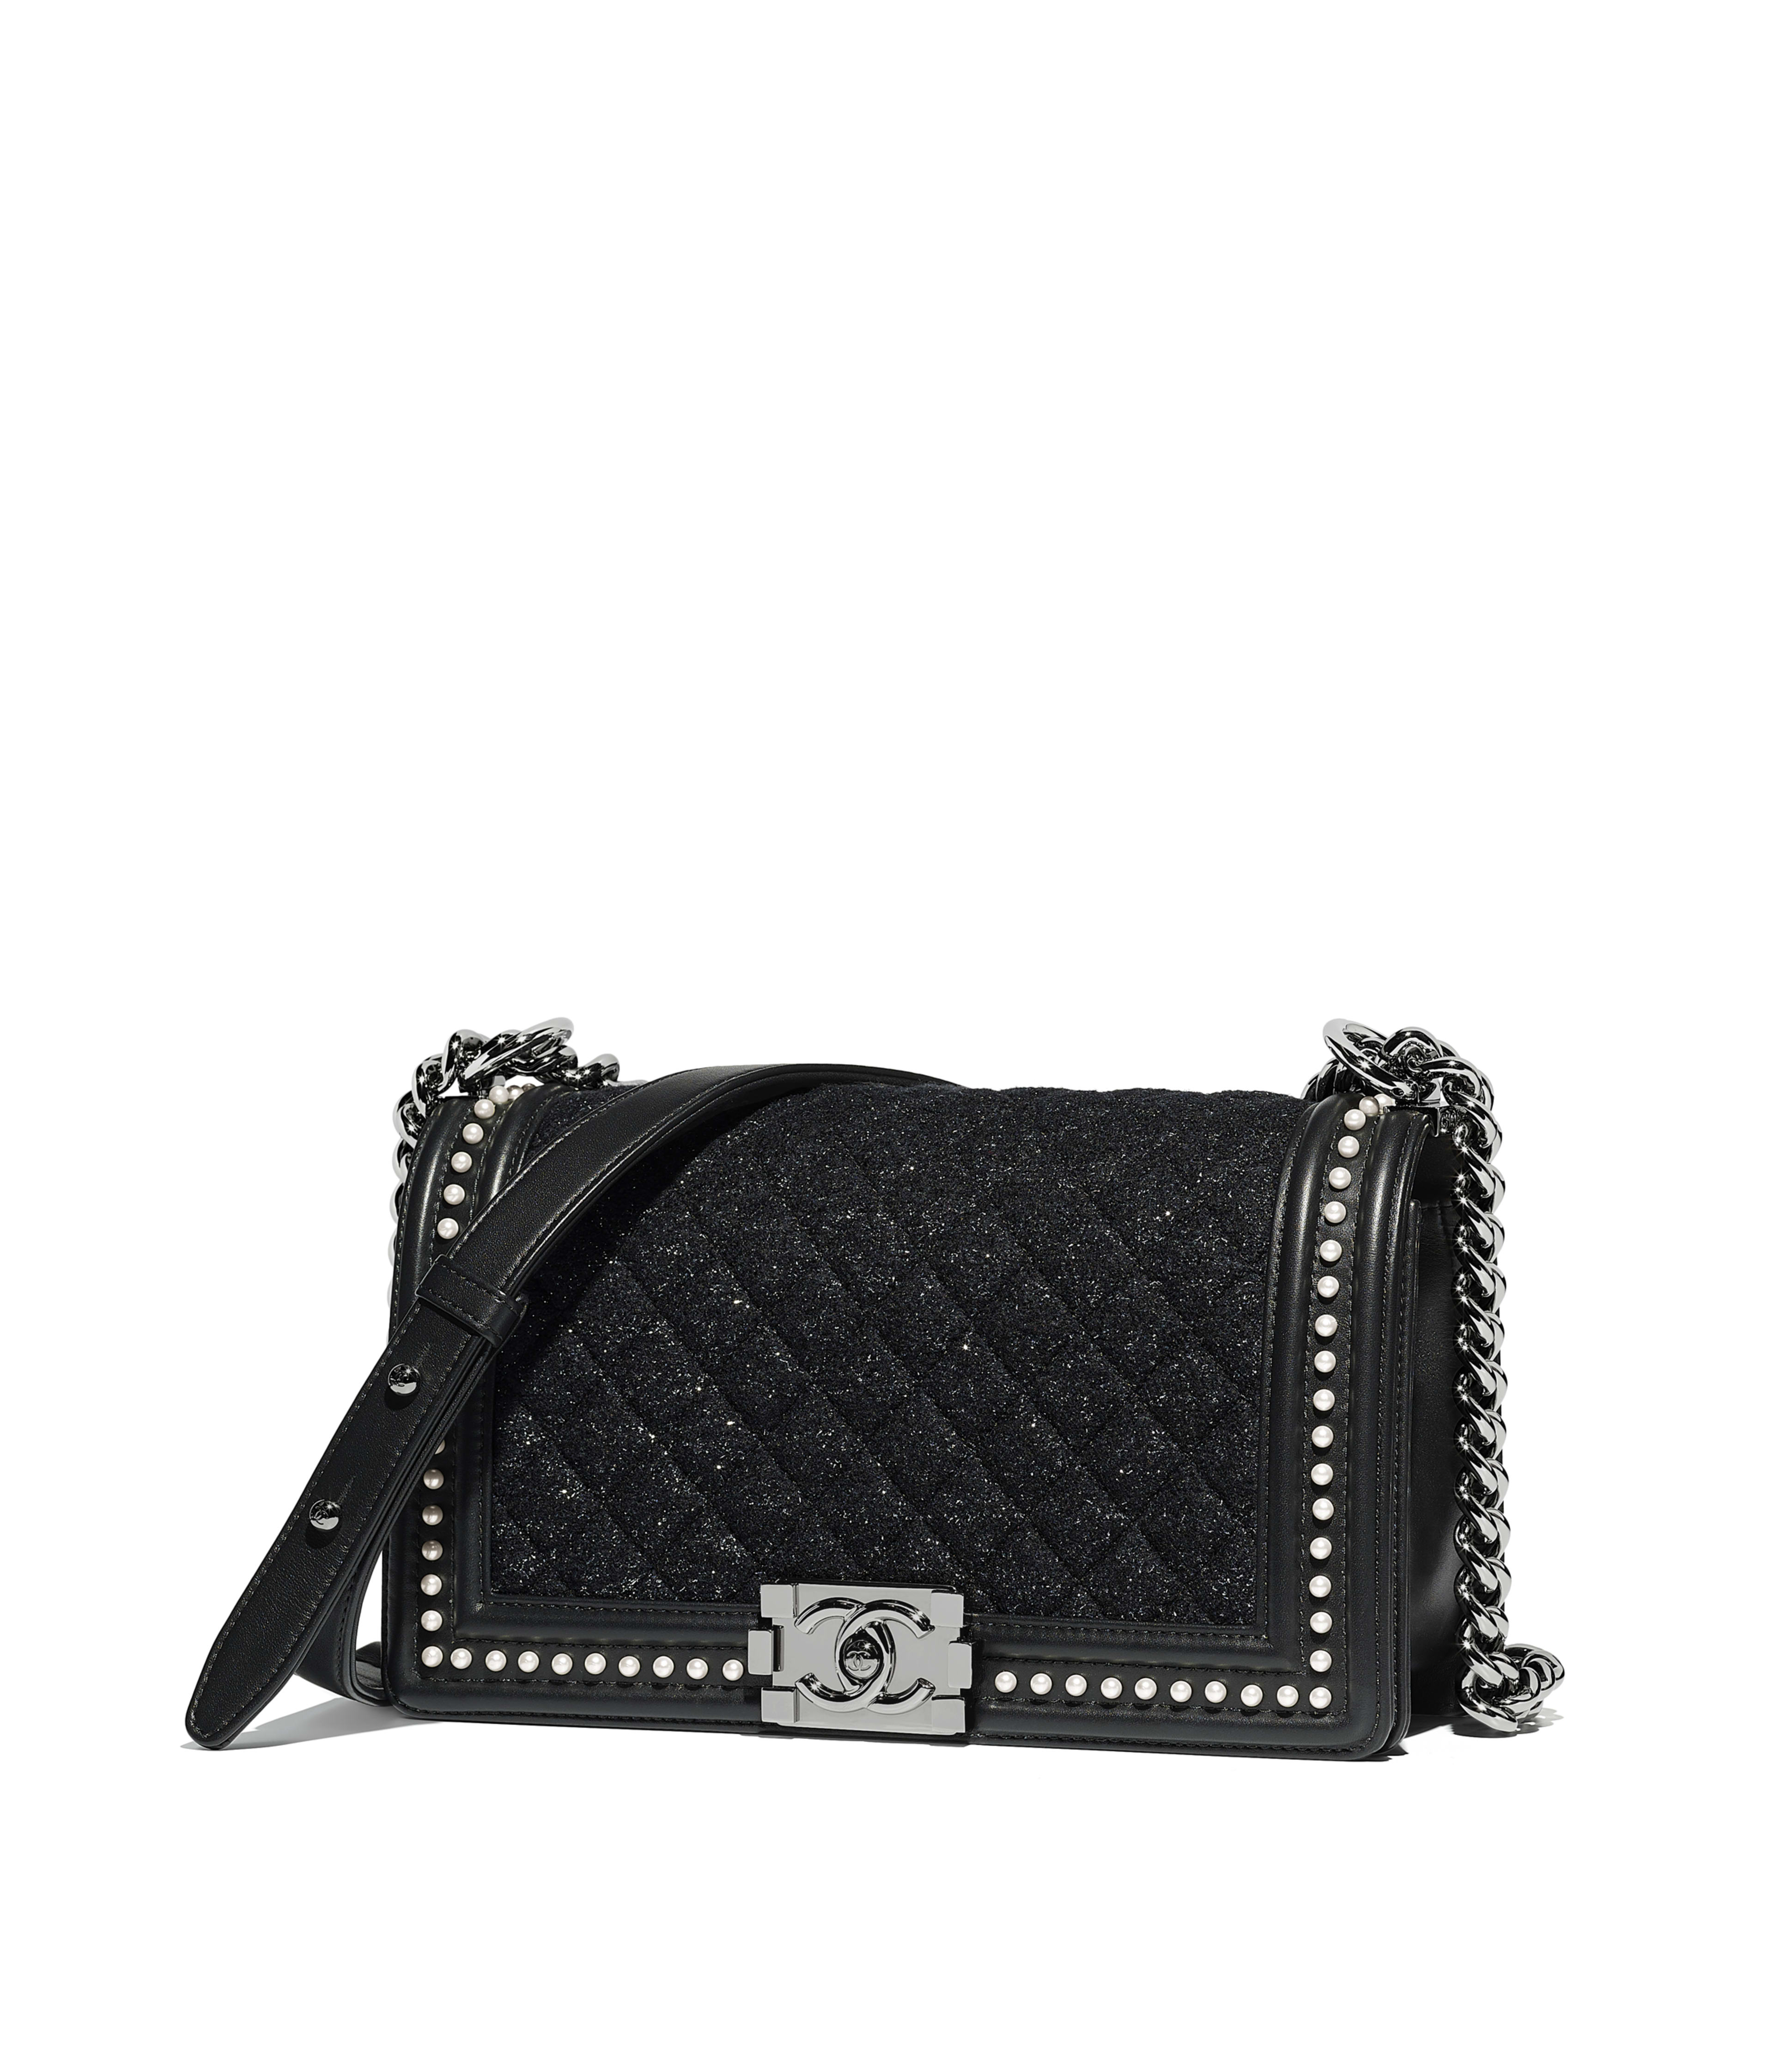 Boy Chanel Handbag Tweed Calfskin Imitation Pearls Ruthenium Finish Metal Black Ref A67086y83826k1035